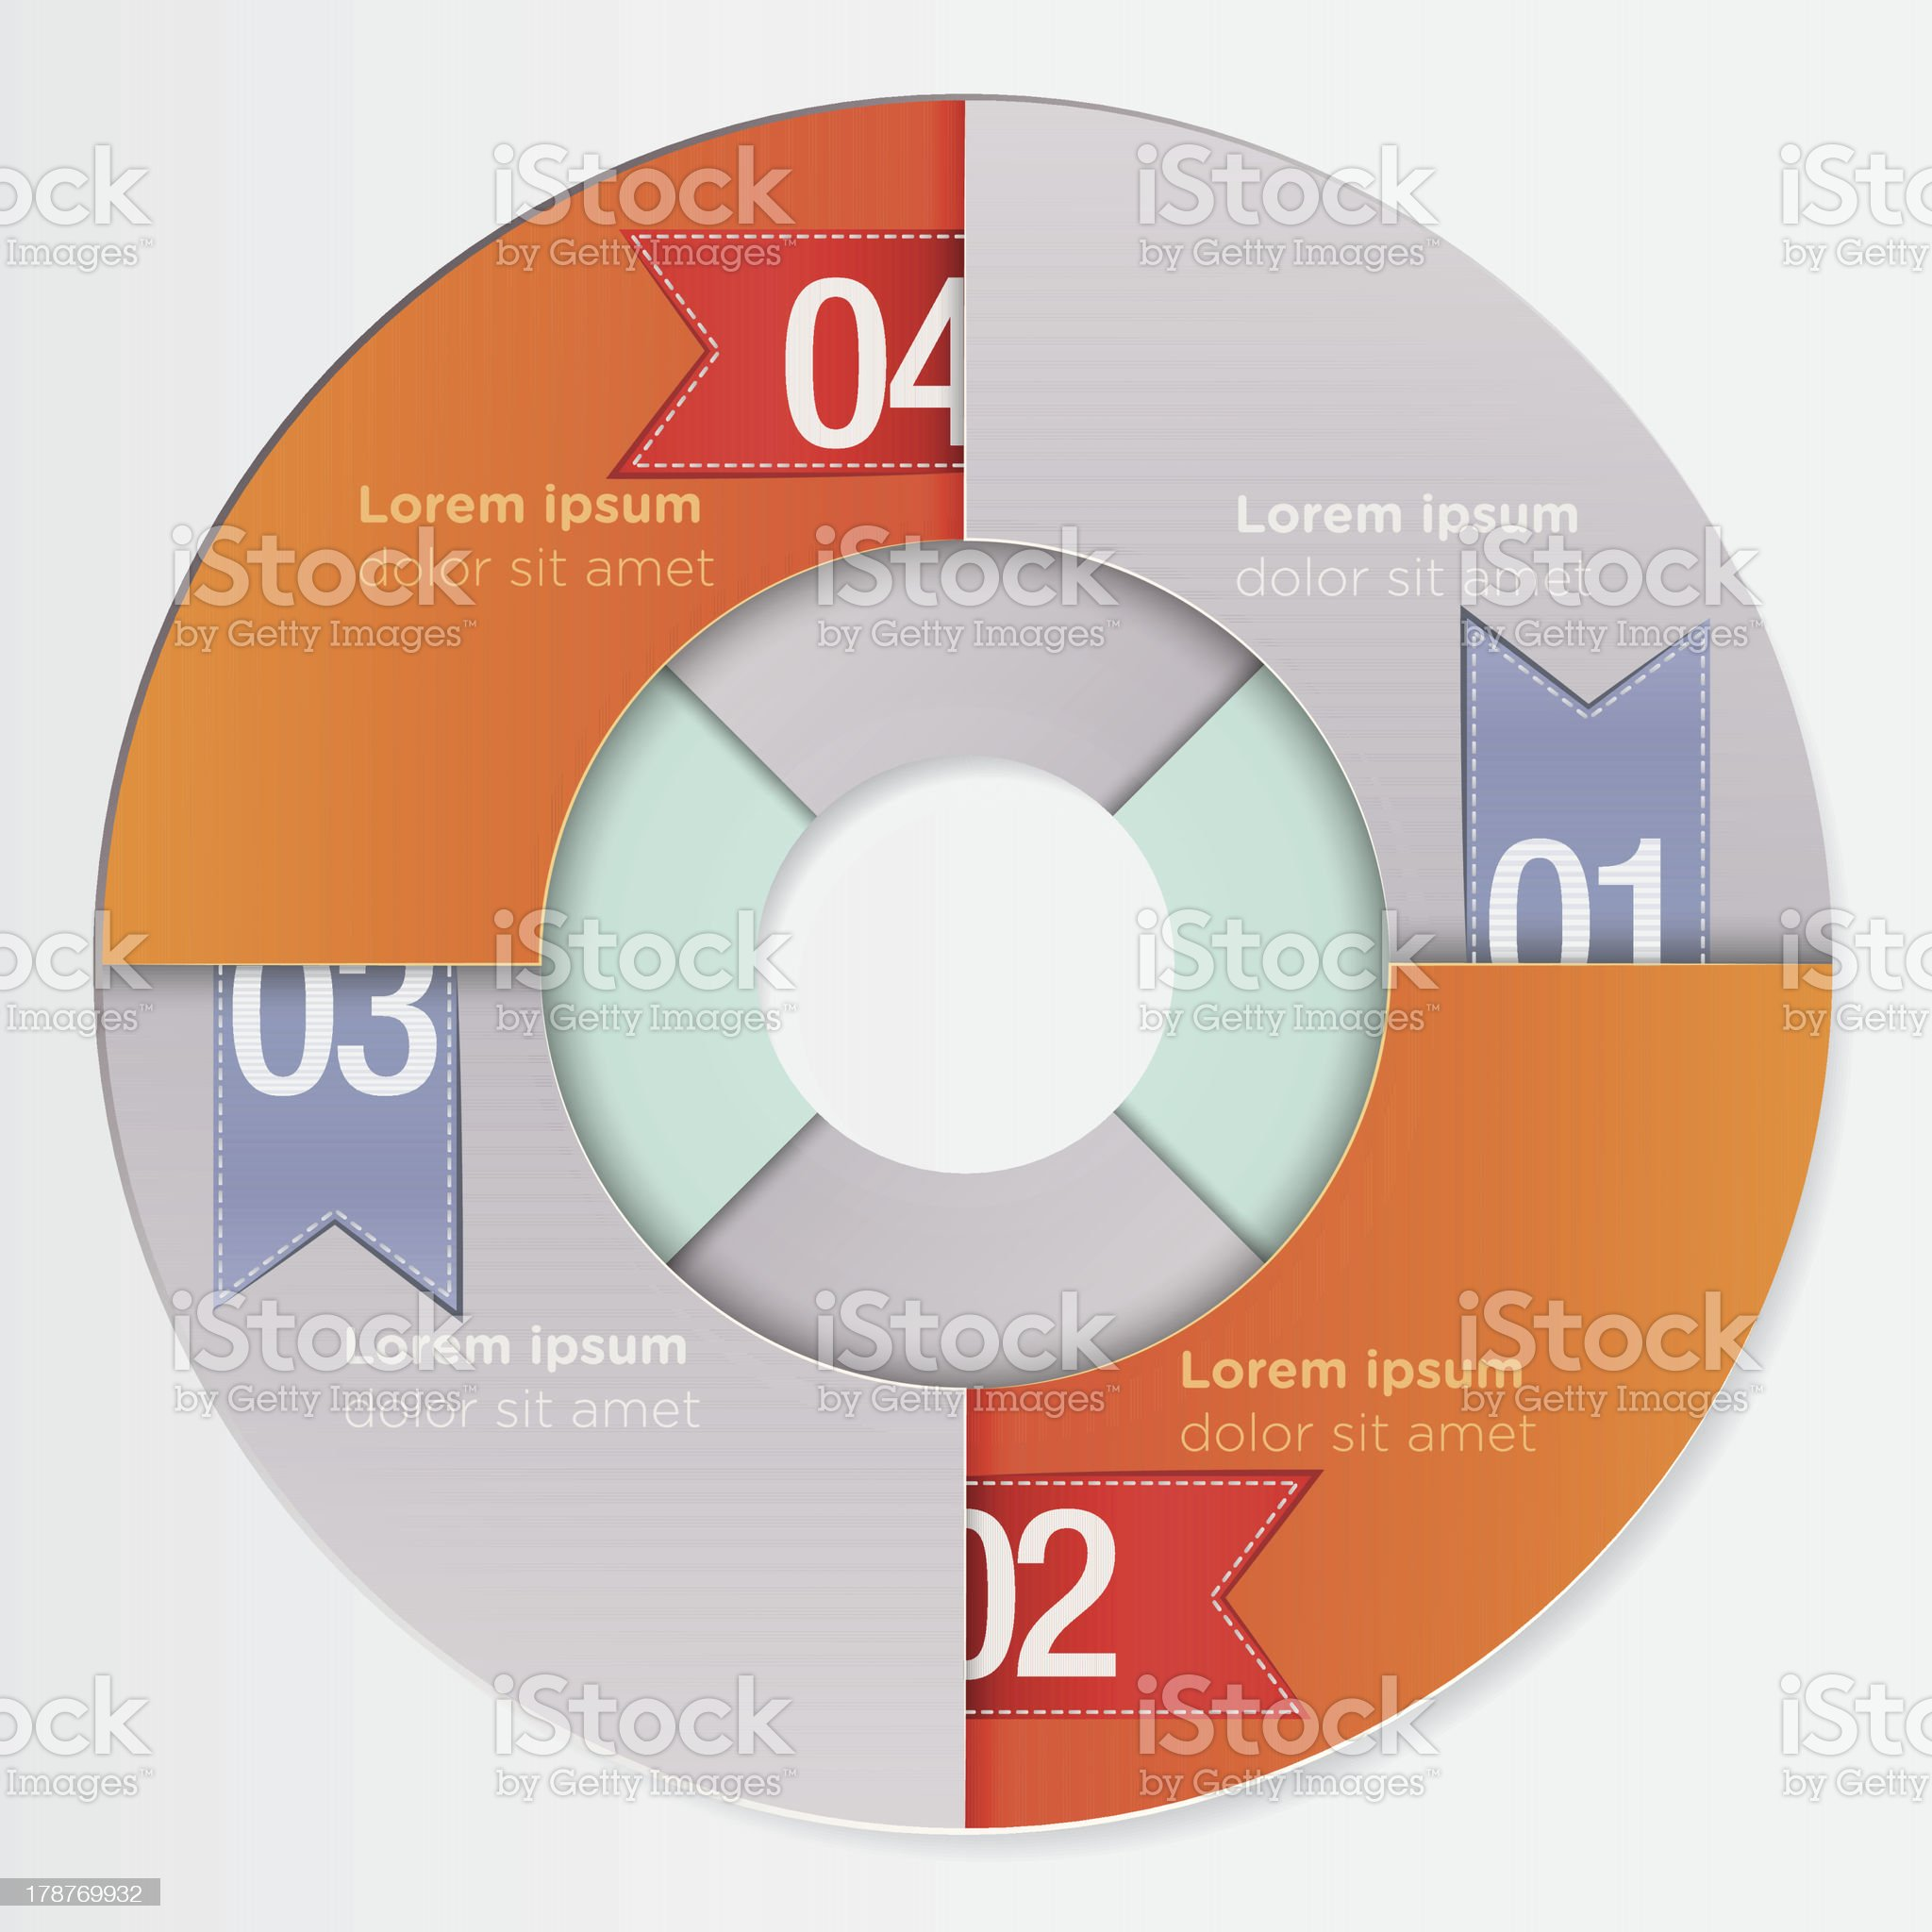 Modern round infographic template royalty-free stock vector art